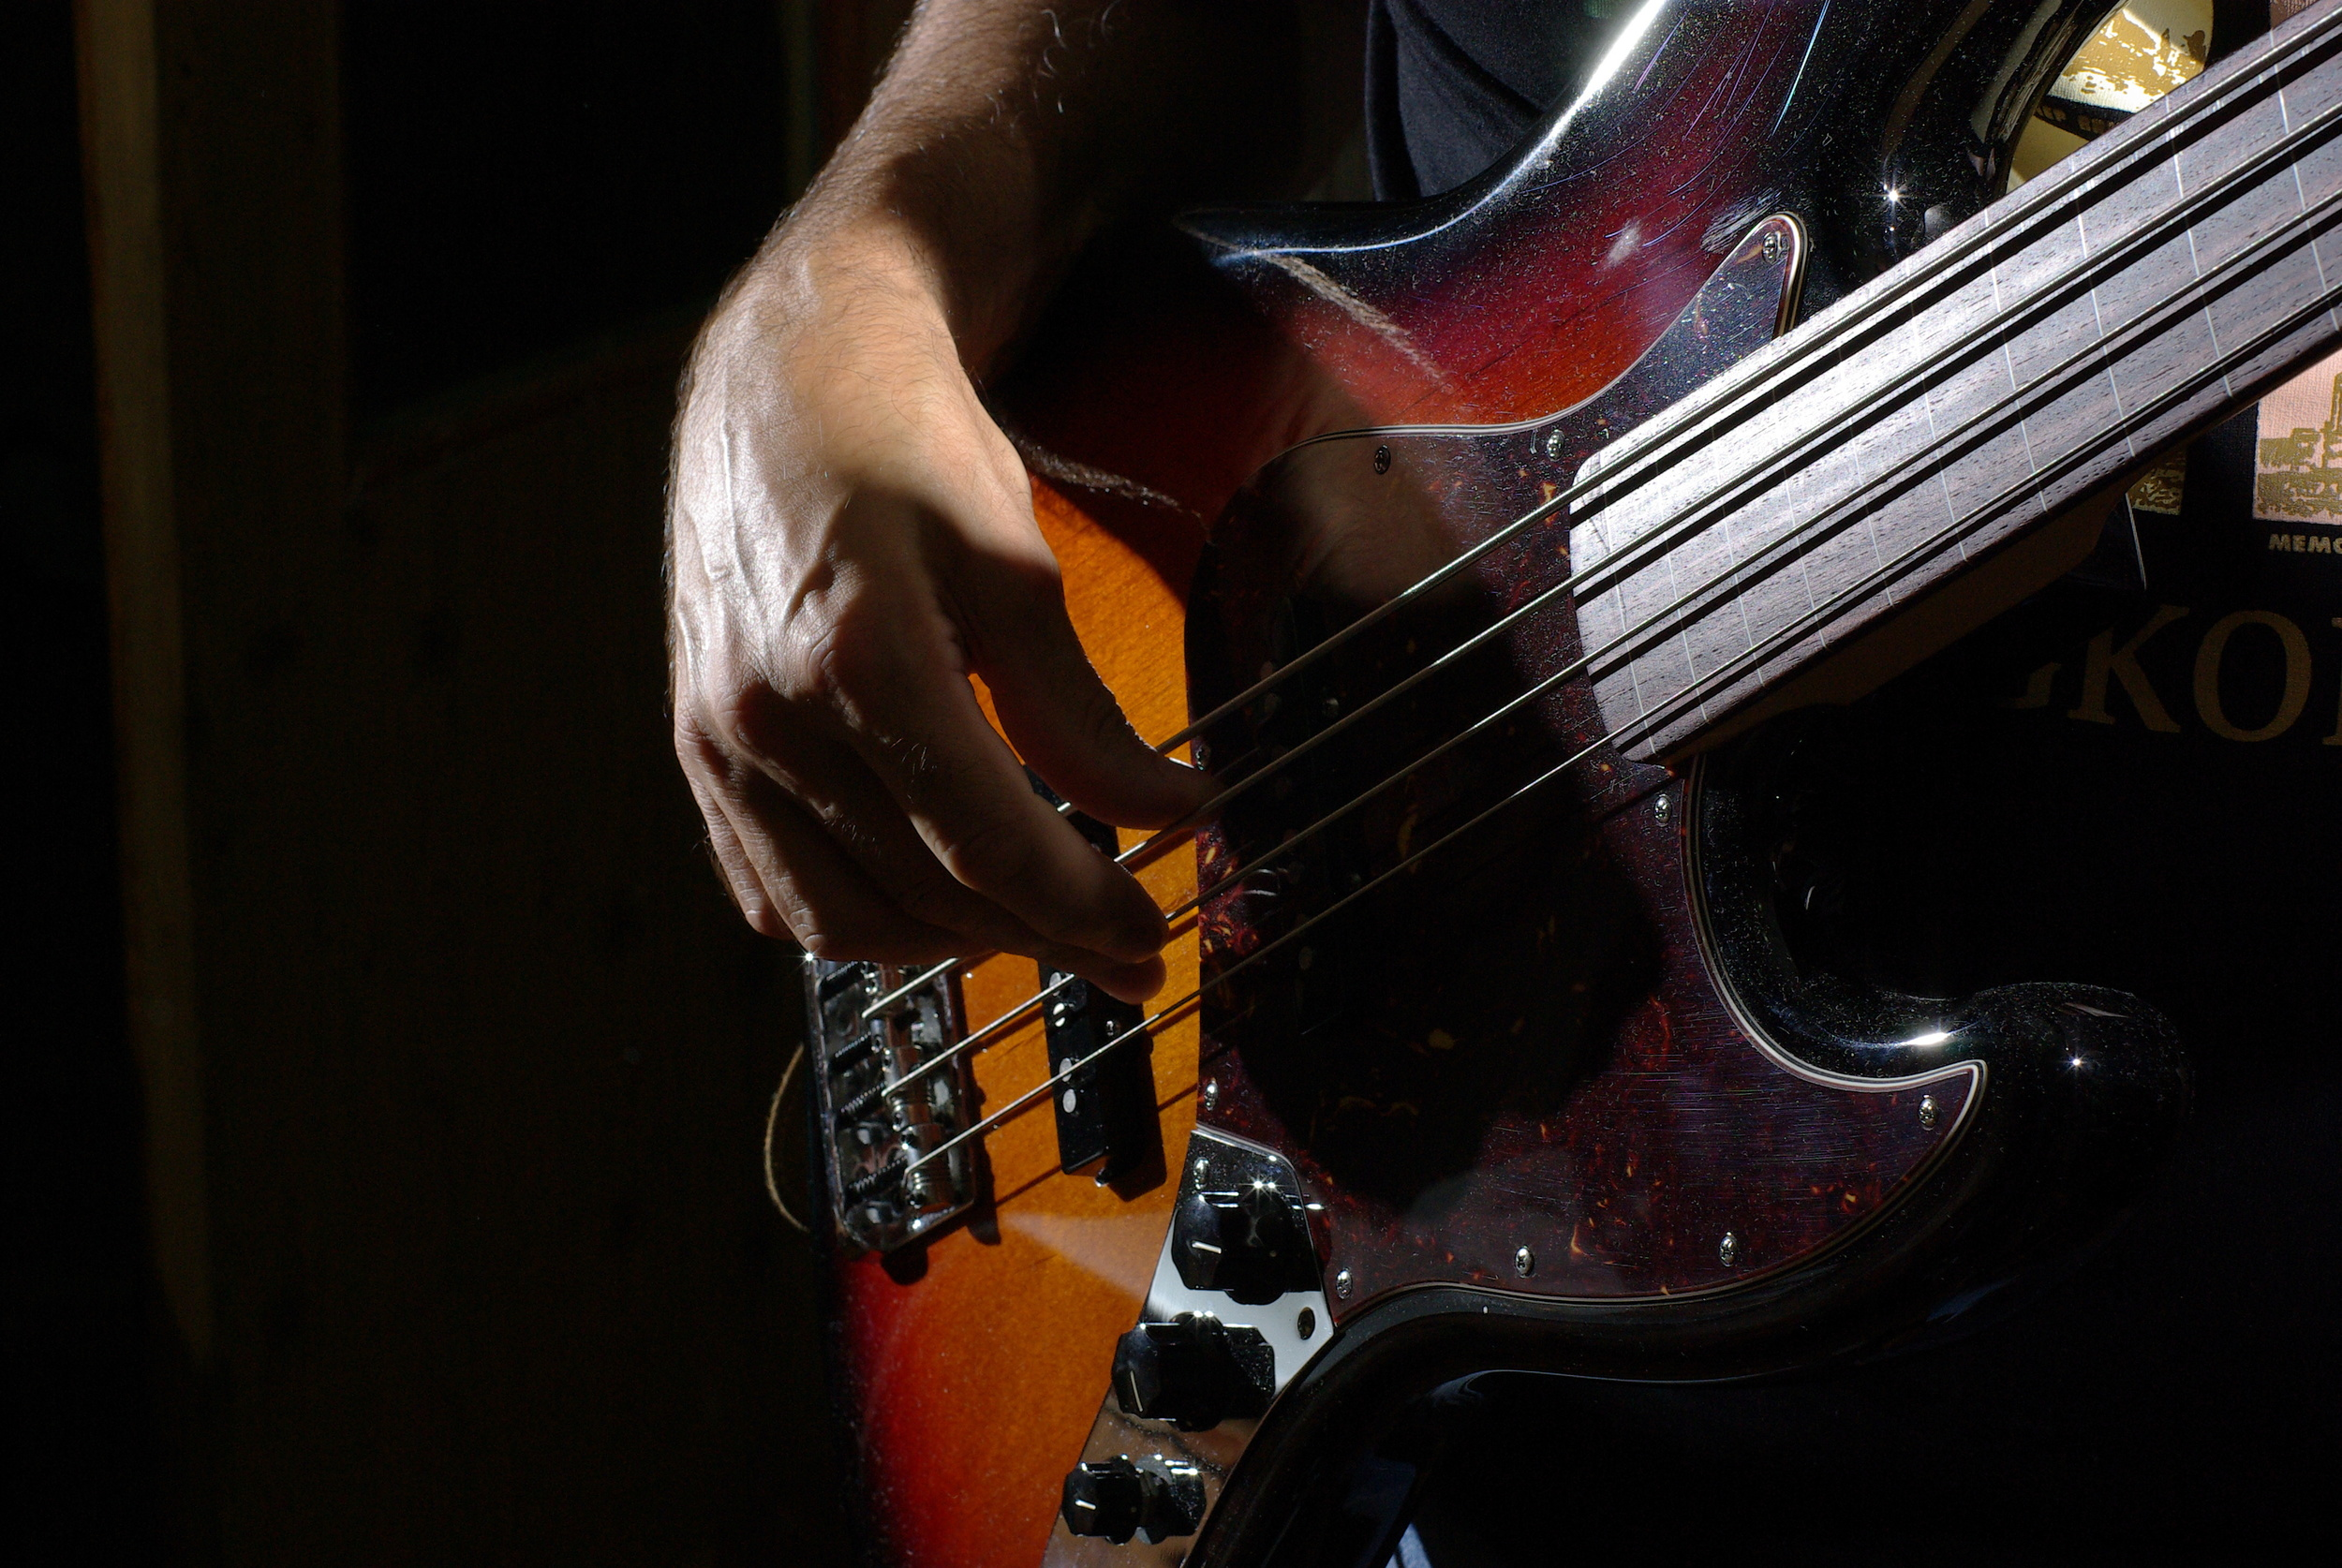 Similar to the drums, bass guitar plays a vital role in keeping a solid rhythm and foundation in music. Laying down a sick groove while having impeccable rhythm will leave the crowd and your band in awe. Learn how to take your bass guitar playing skills to the next level with our free bass guitar articles!